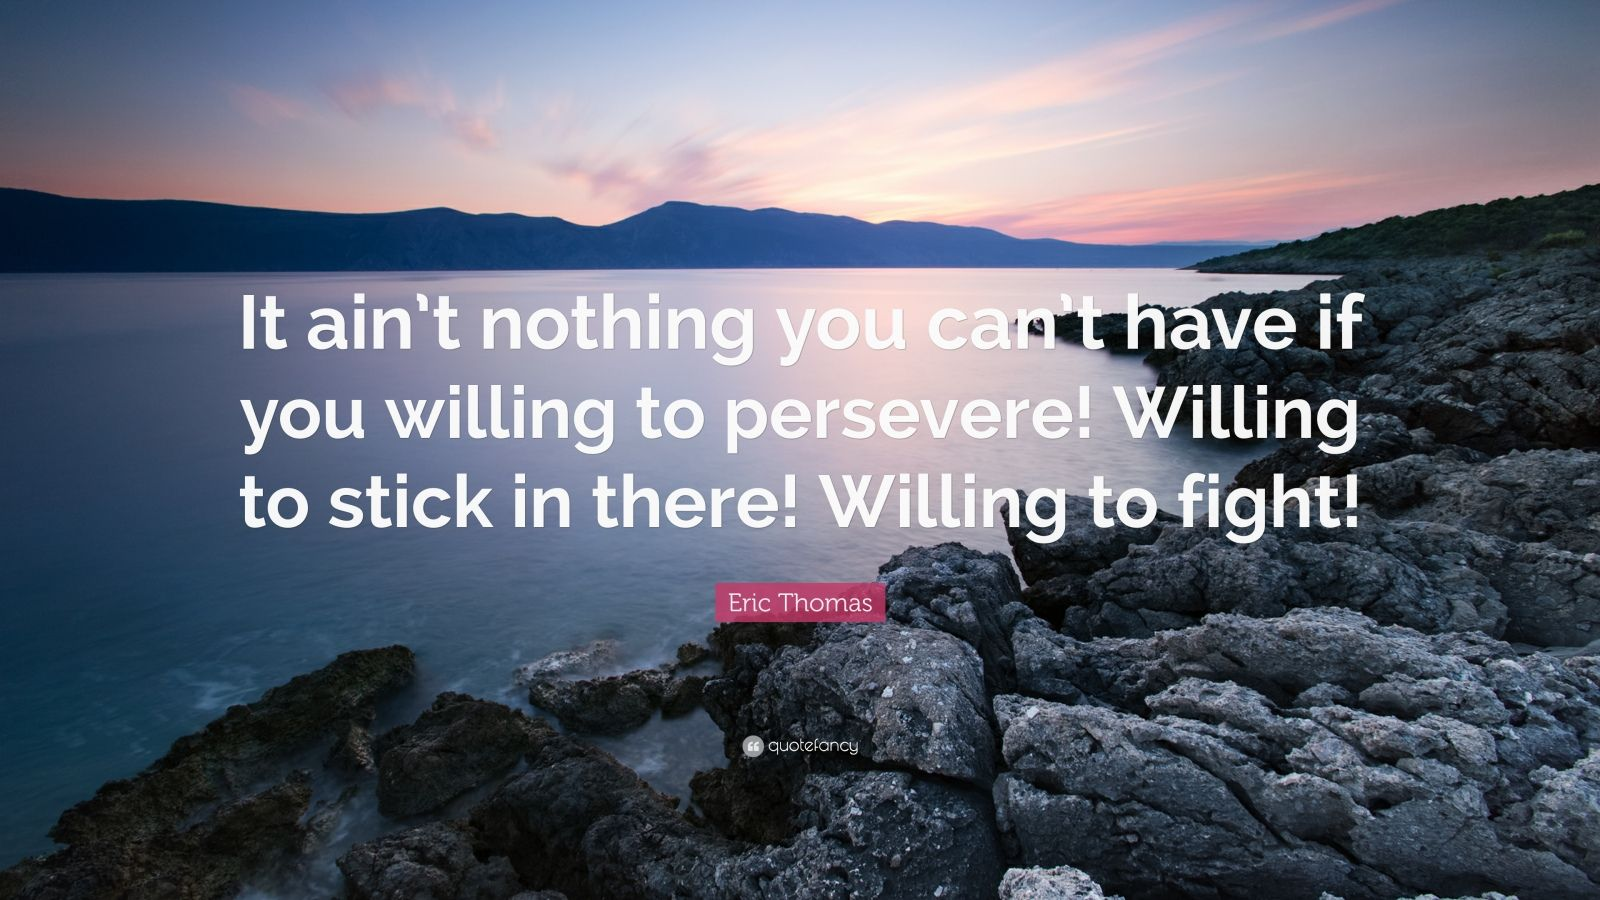 """Eric Thomas Quote: """"It ain't nothing you can't have if you willing to persevere! Willing to stick in there! Willing to fight!"""""""